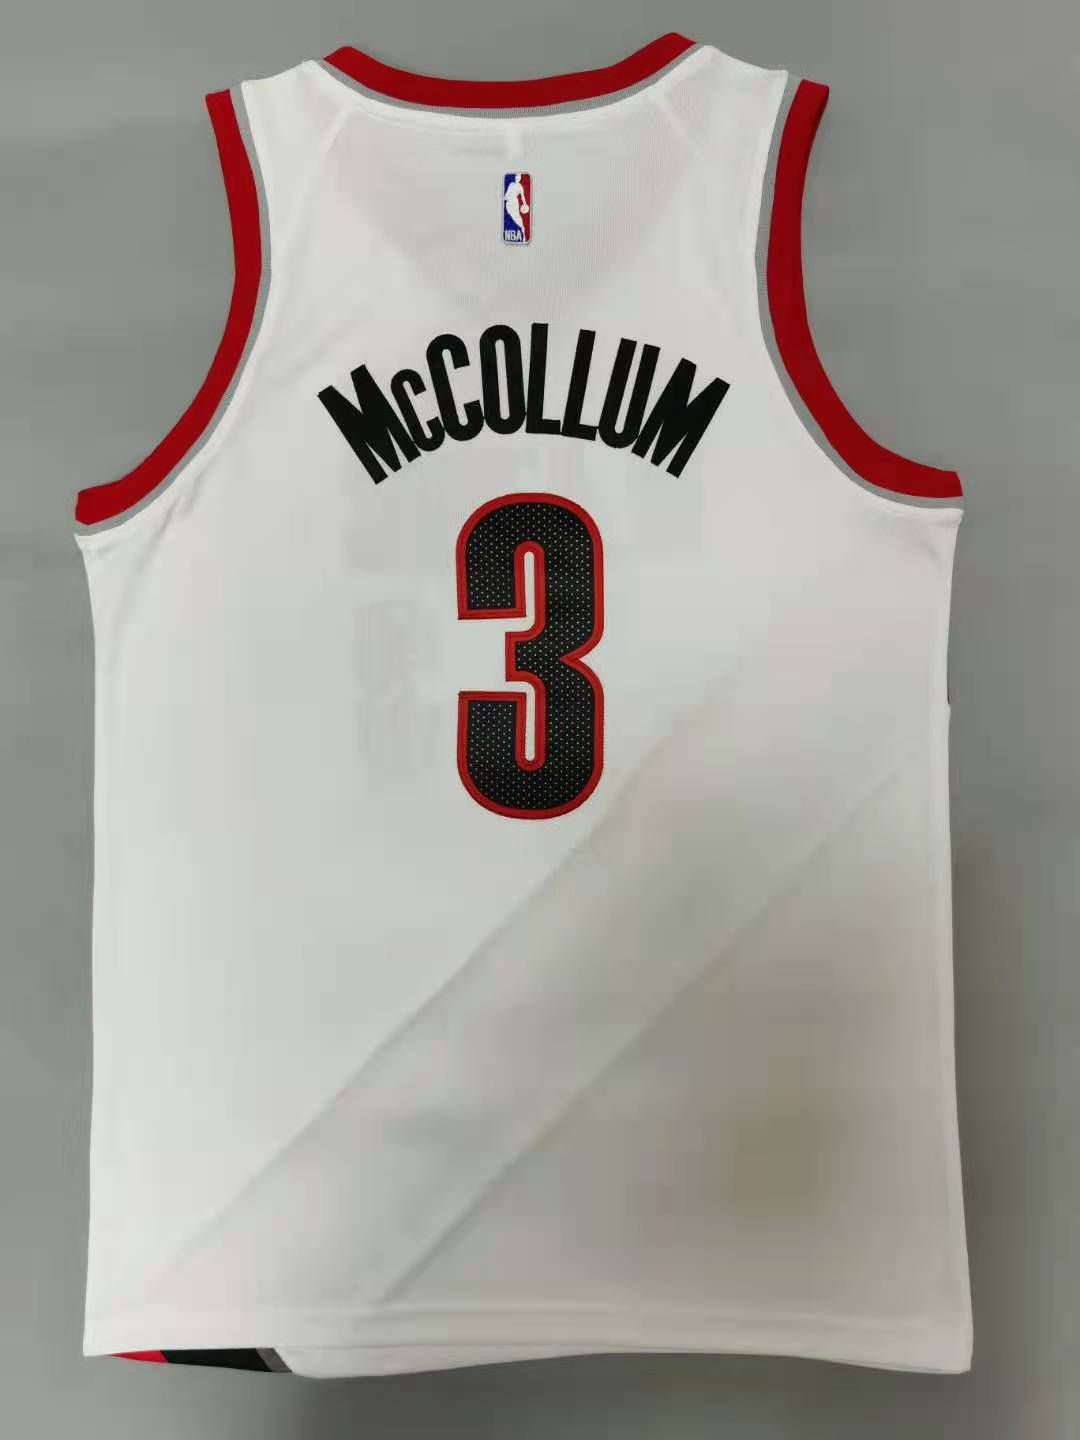 Cheap Men Portland Trail Blazers 3 Mccollum White 2021 Nike Game NBA Jerseys